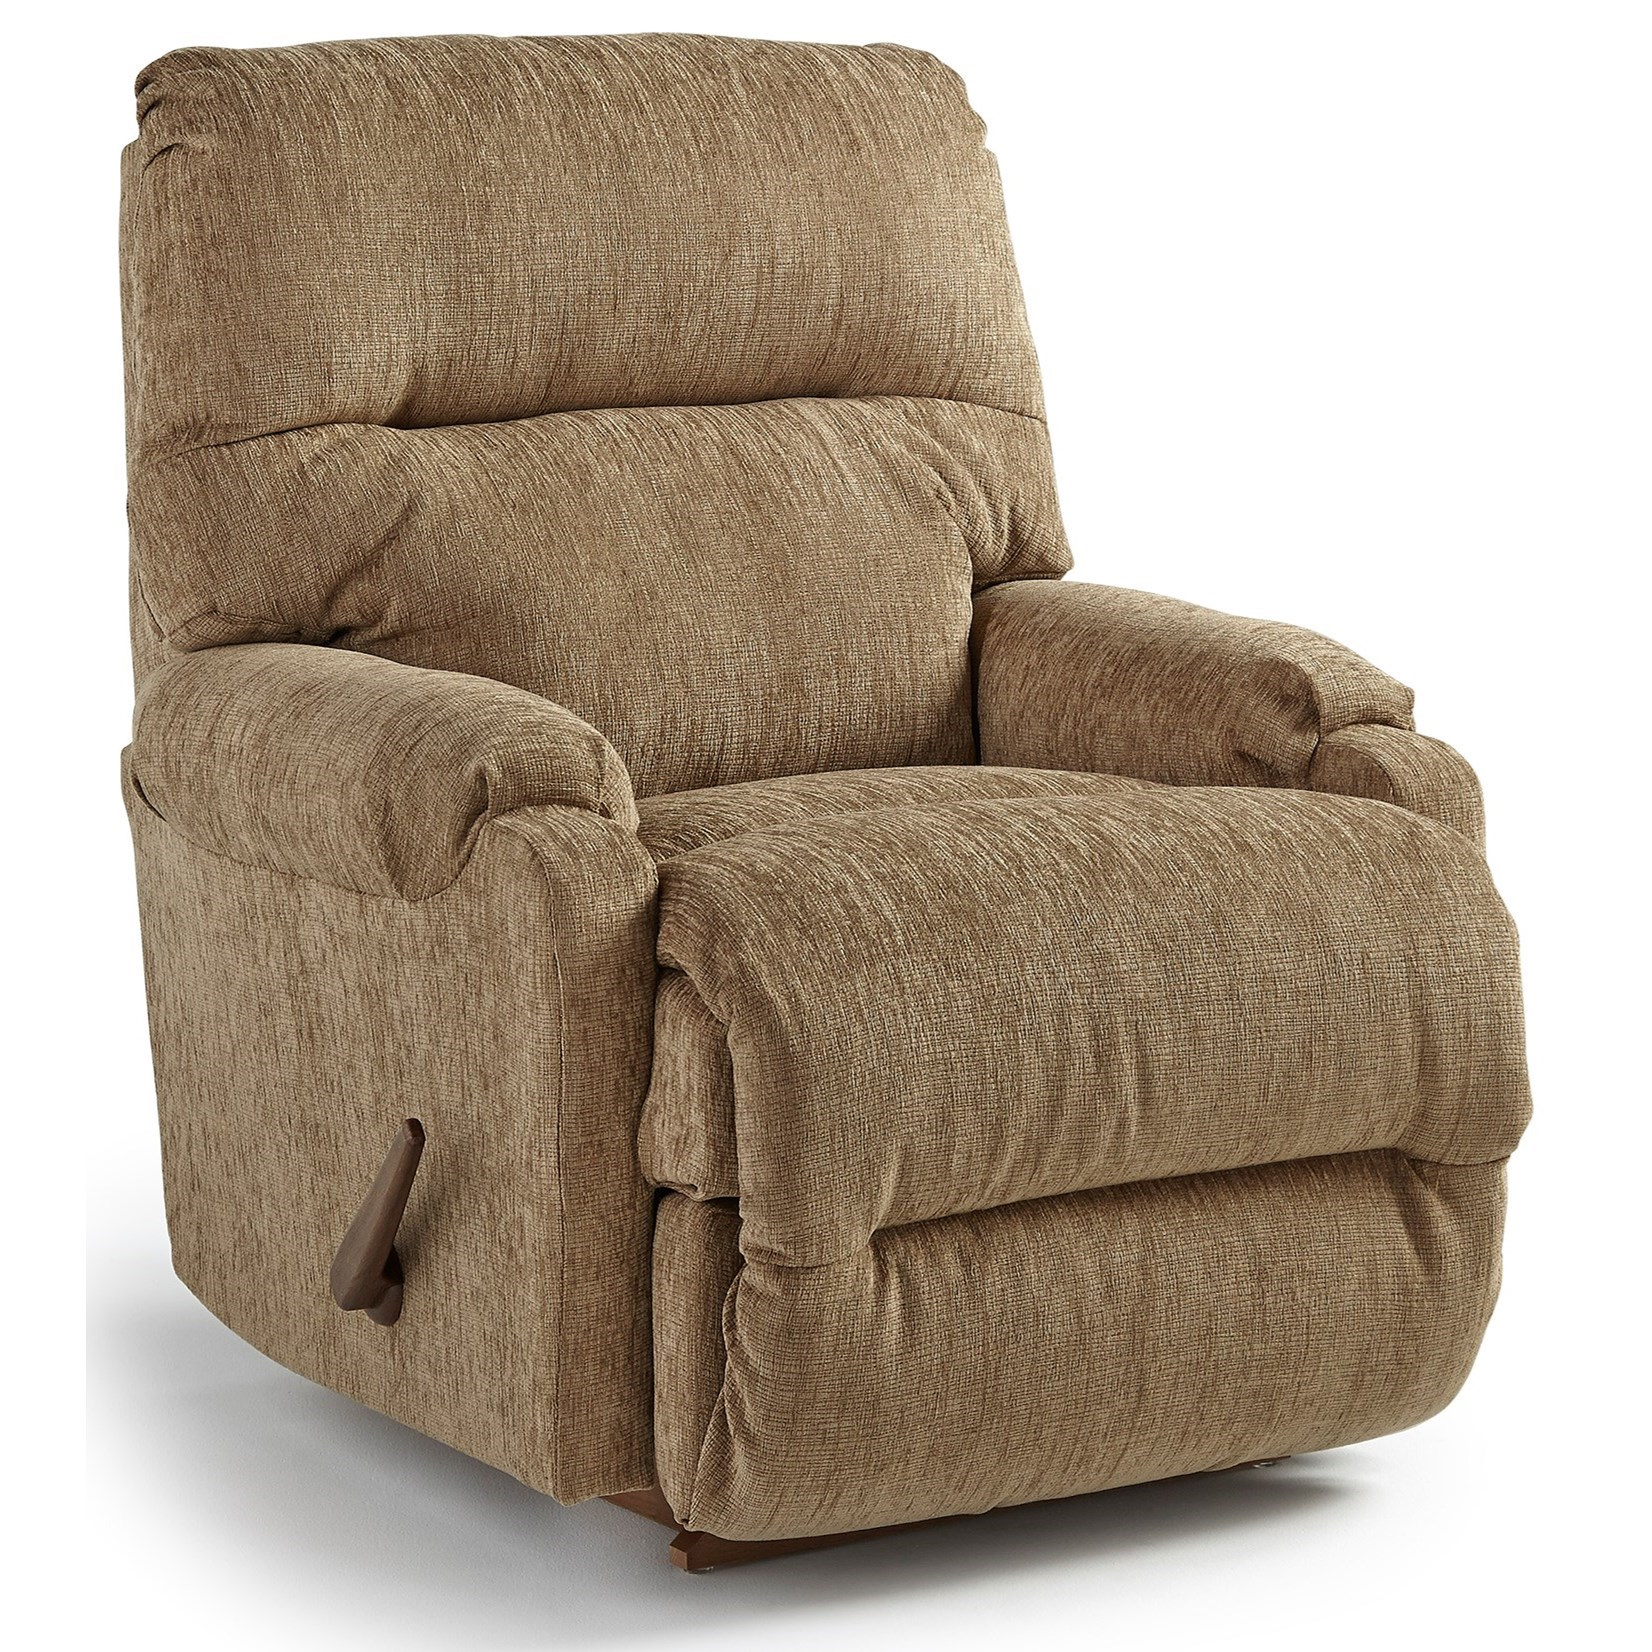 Cannes Rocker Recliner by Bravo Furniture at Bennett's Furniture and Mattresses